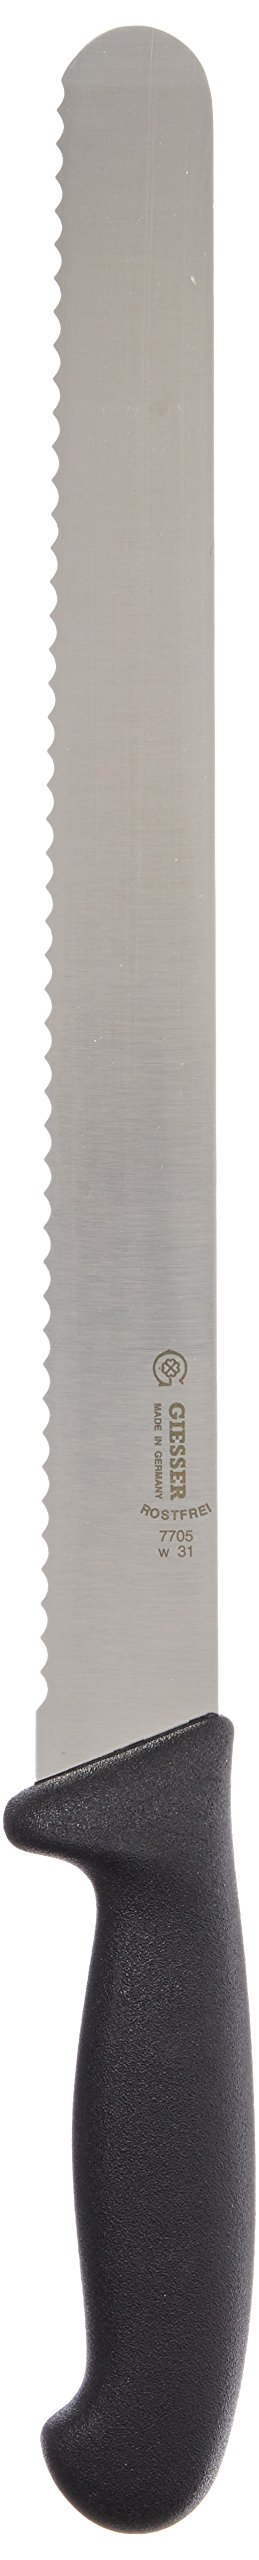 Giesser Messer 182121 Serrated Ham Knife